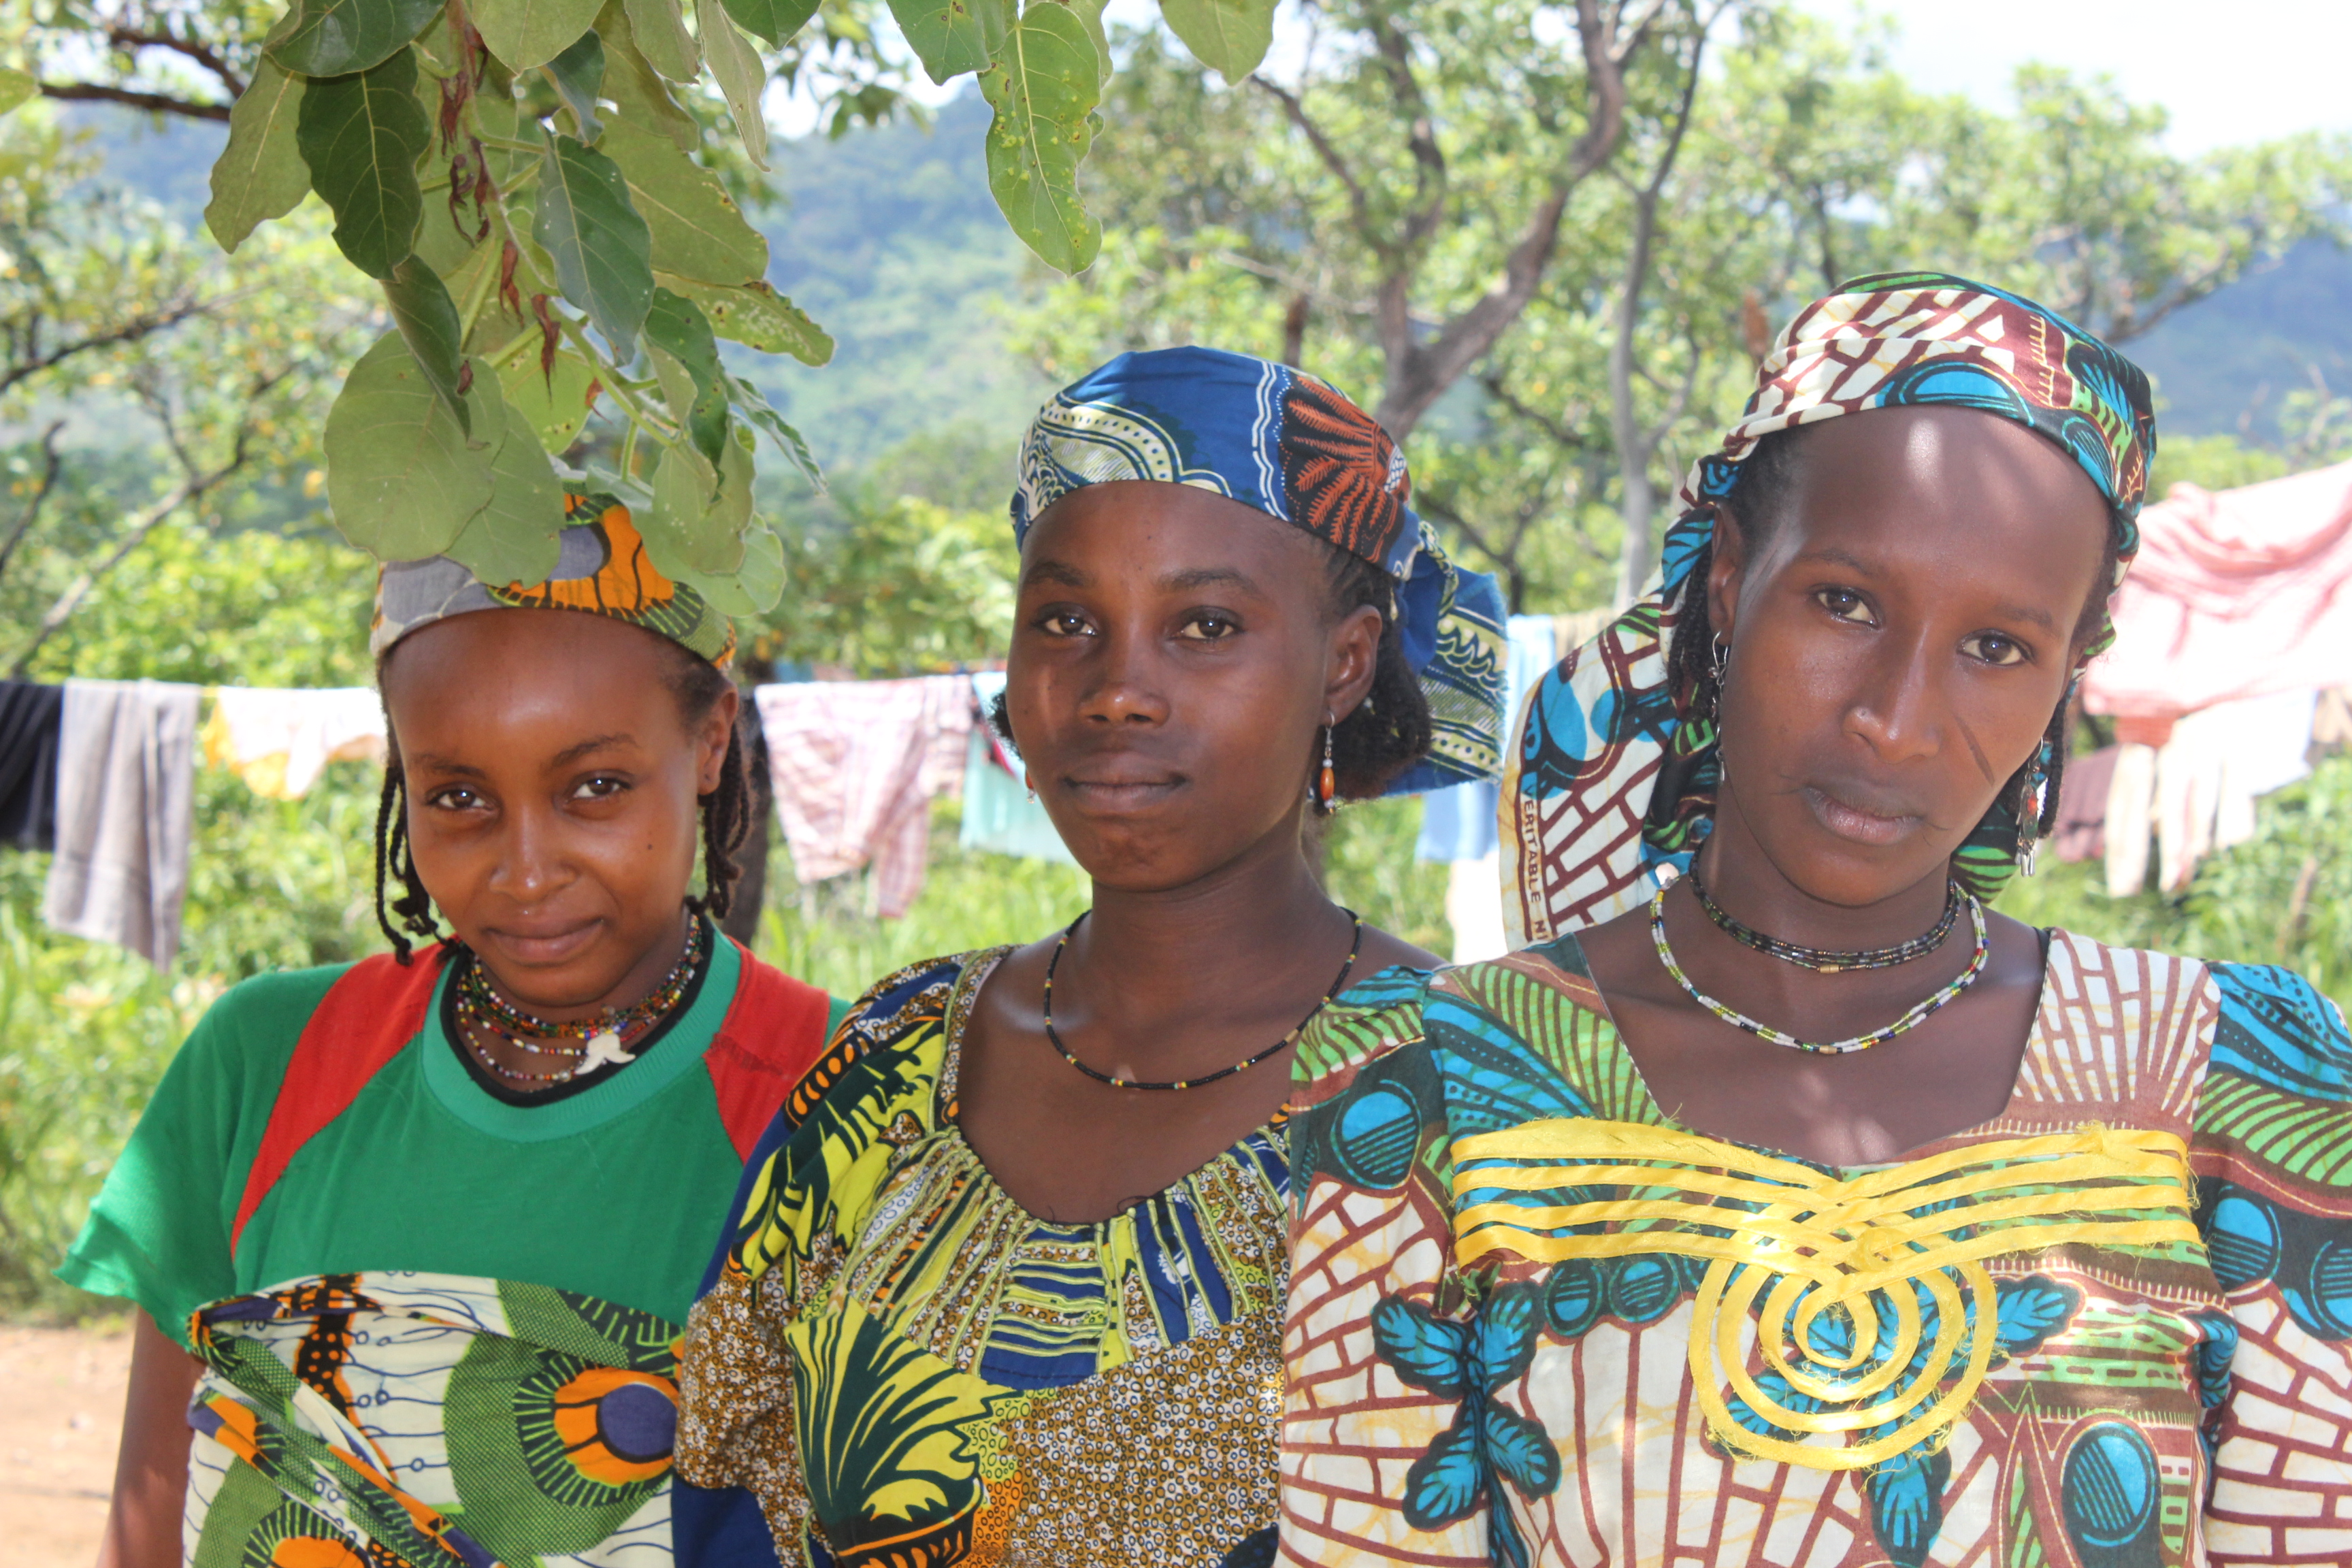 Three young black women wearing headscarves, necklaces and colorful dresses, are looking at the camera. Behind, a clothesline with clothes drying on it, and some trees.